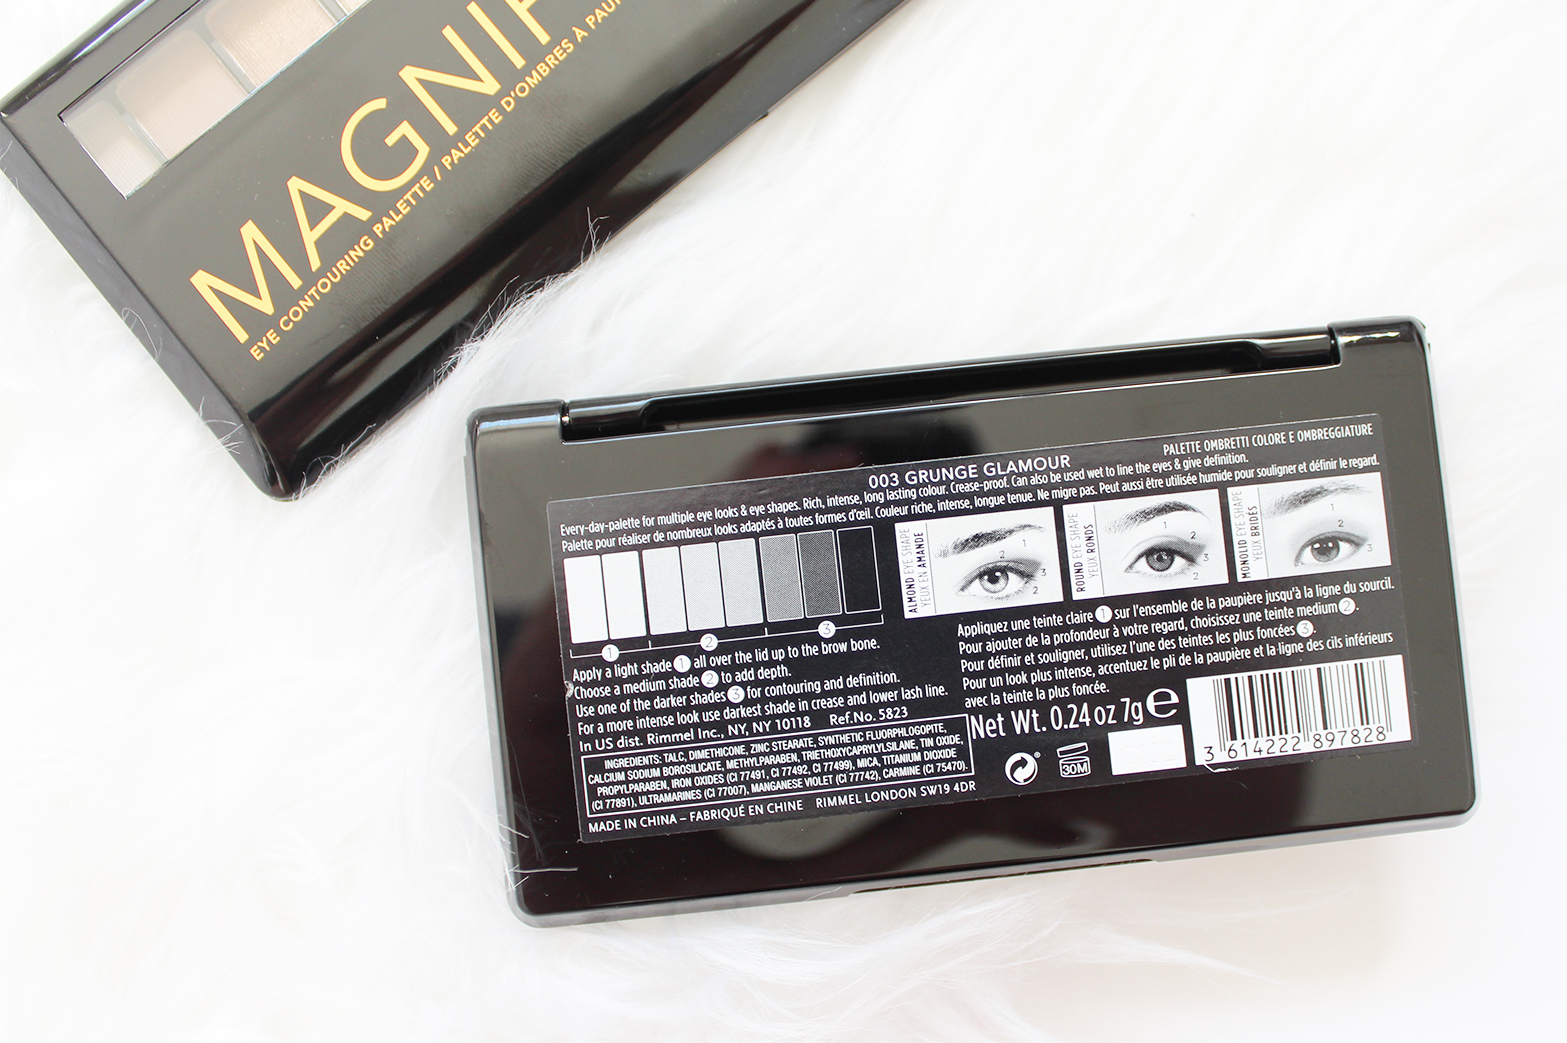 RIMMEL | Magnif'eyes Contouring Eye Palettes - Review + Swatches - CassandraMyee